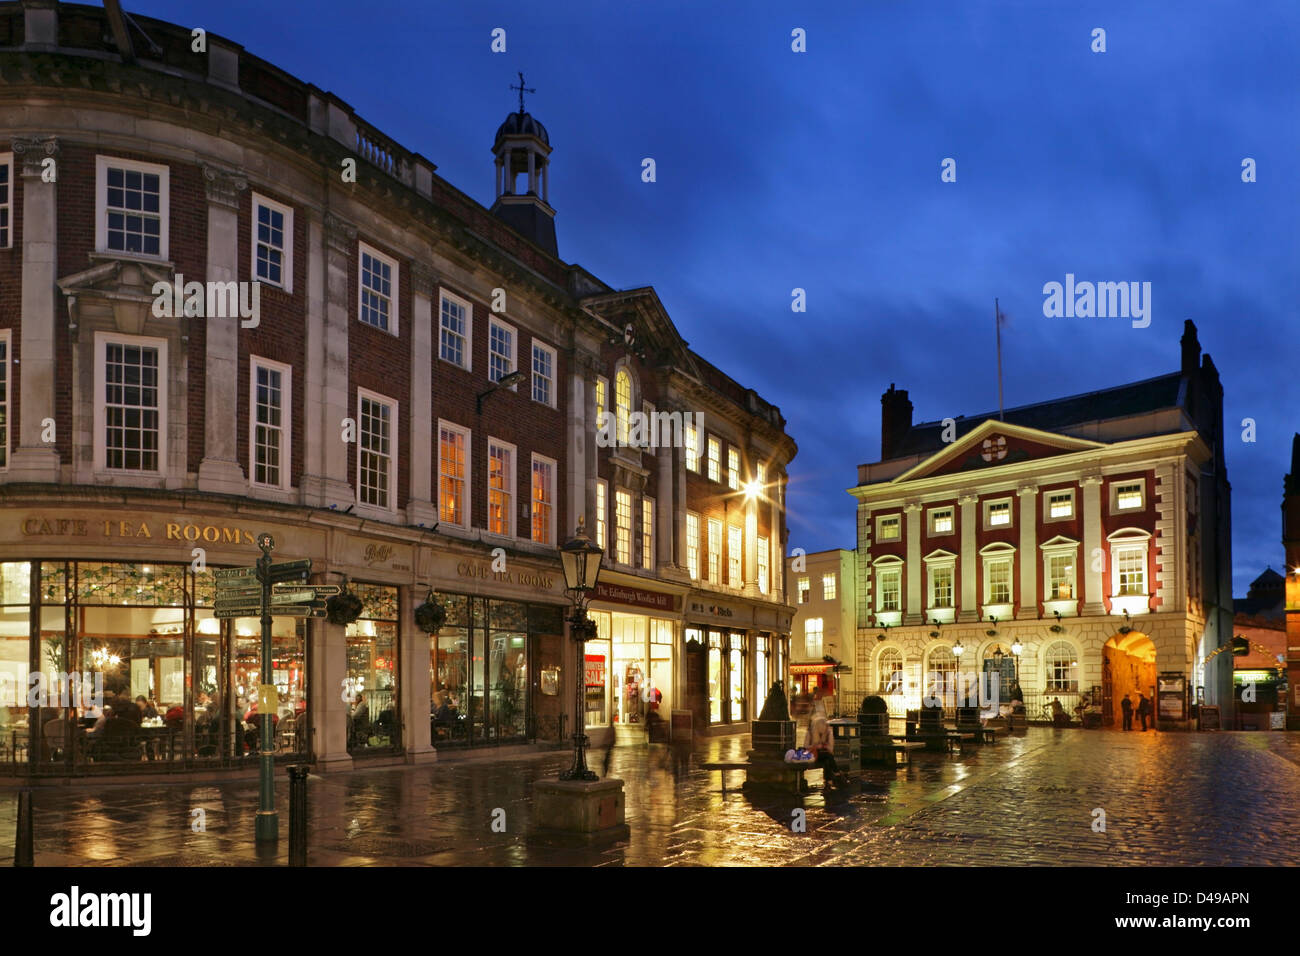 Betty's Tearooms and the Mansion House, St Helen's Square, York, Yorkshire, United Kingdom. Stock Photo